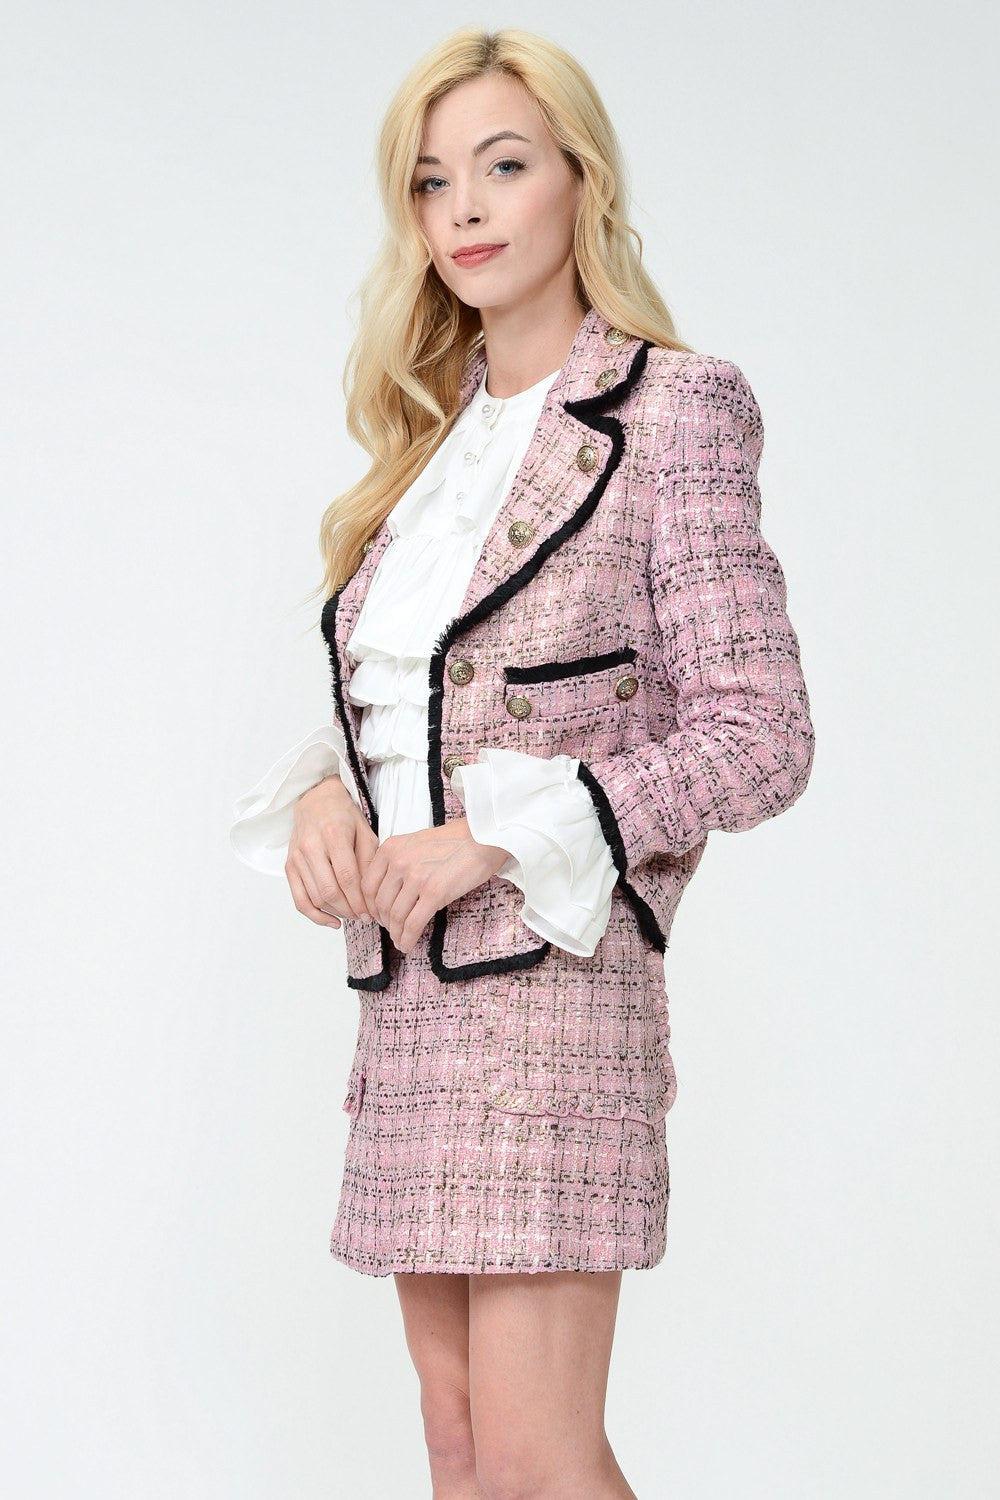 Horowitz Tweed Jacket by Sister Jane